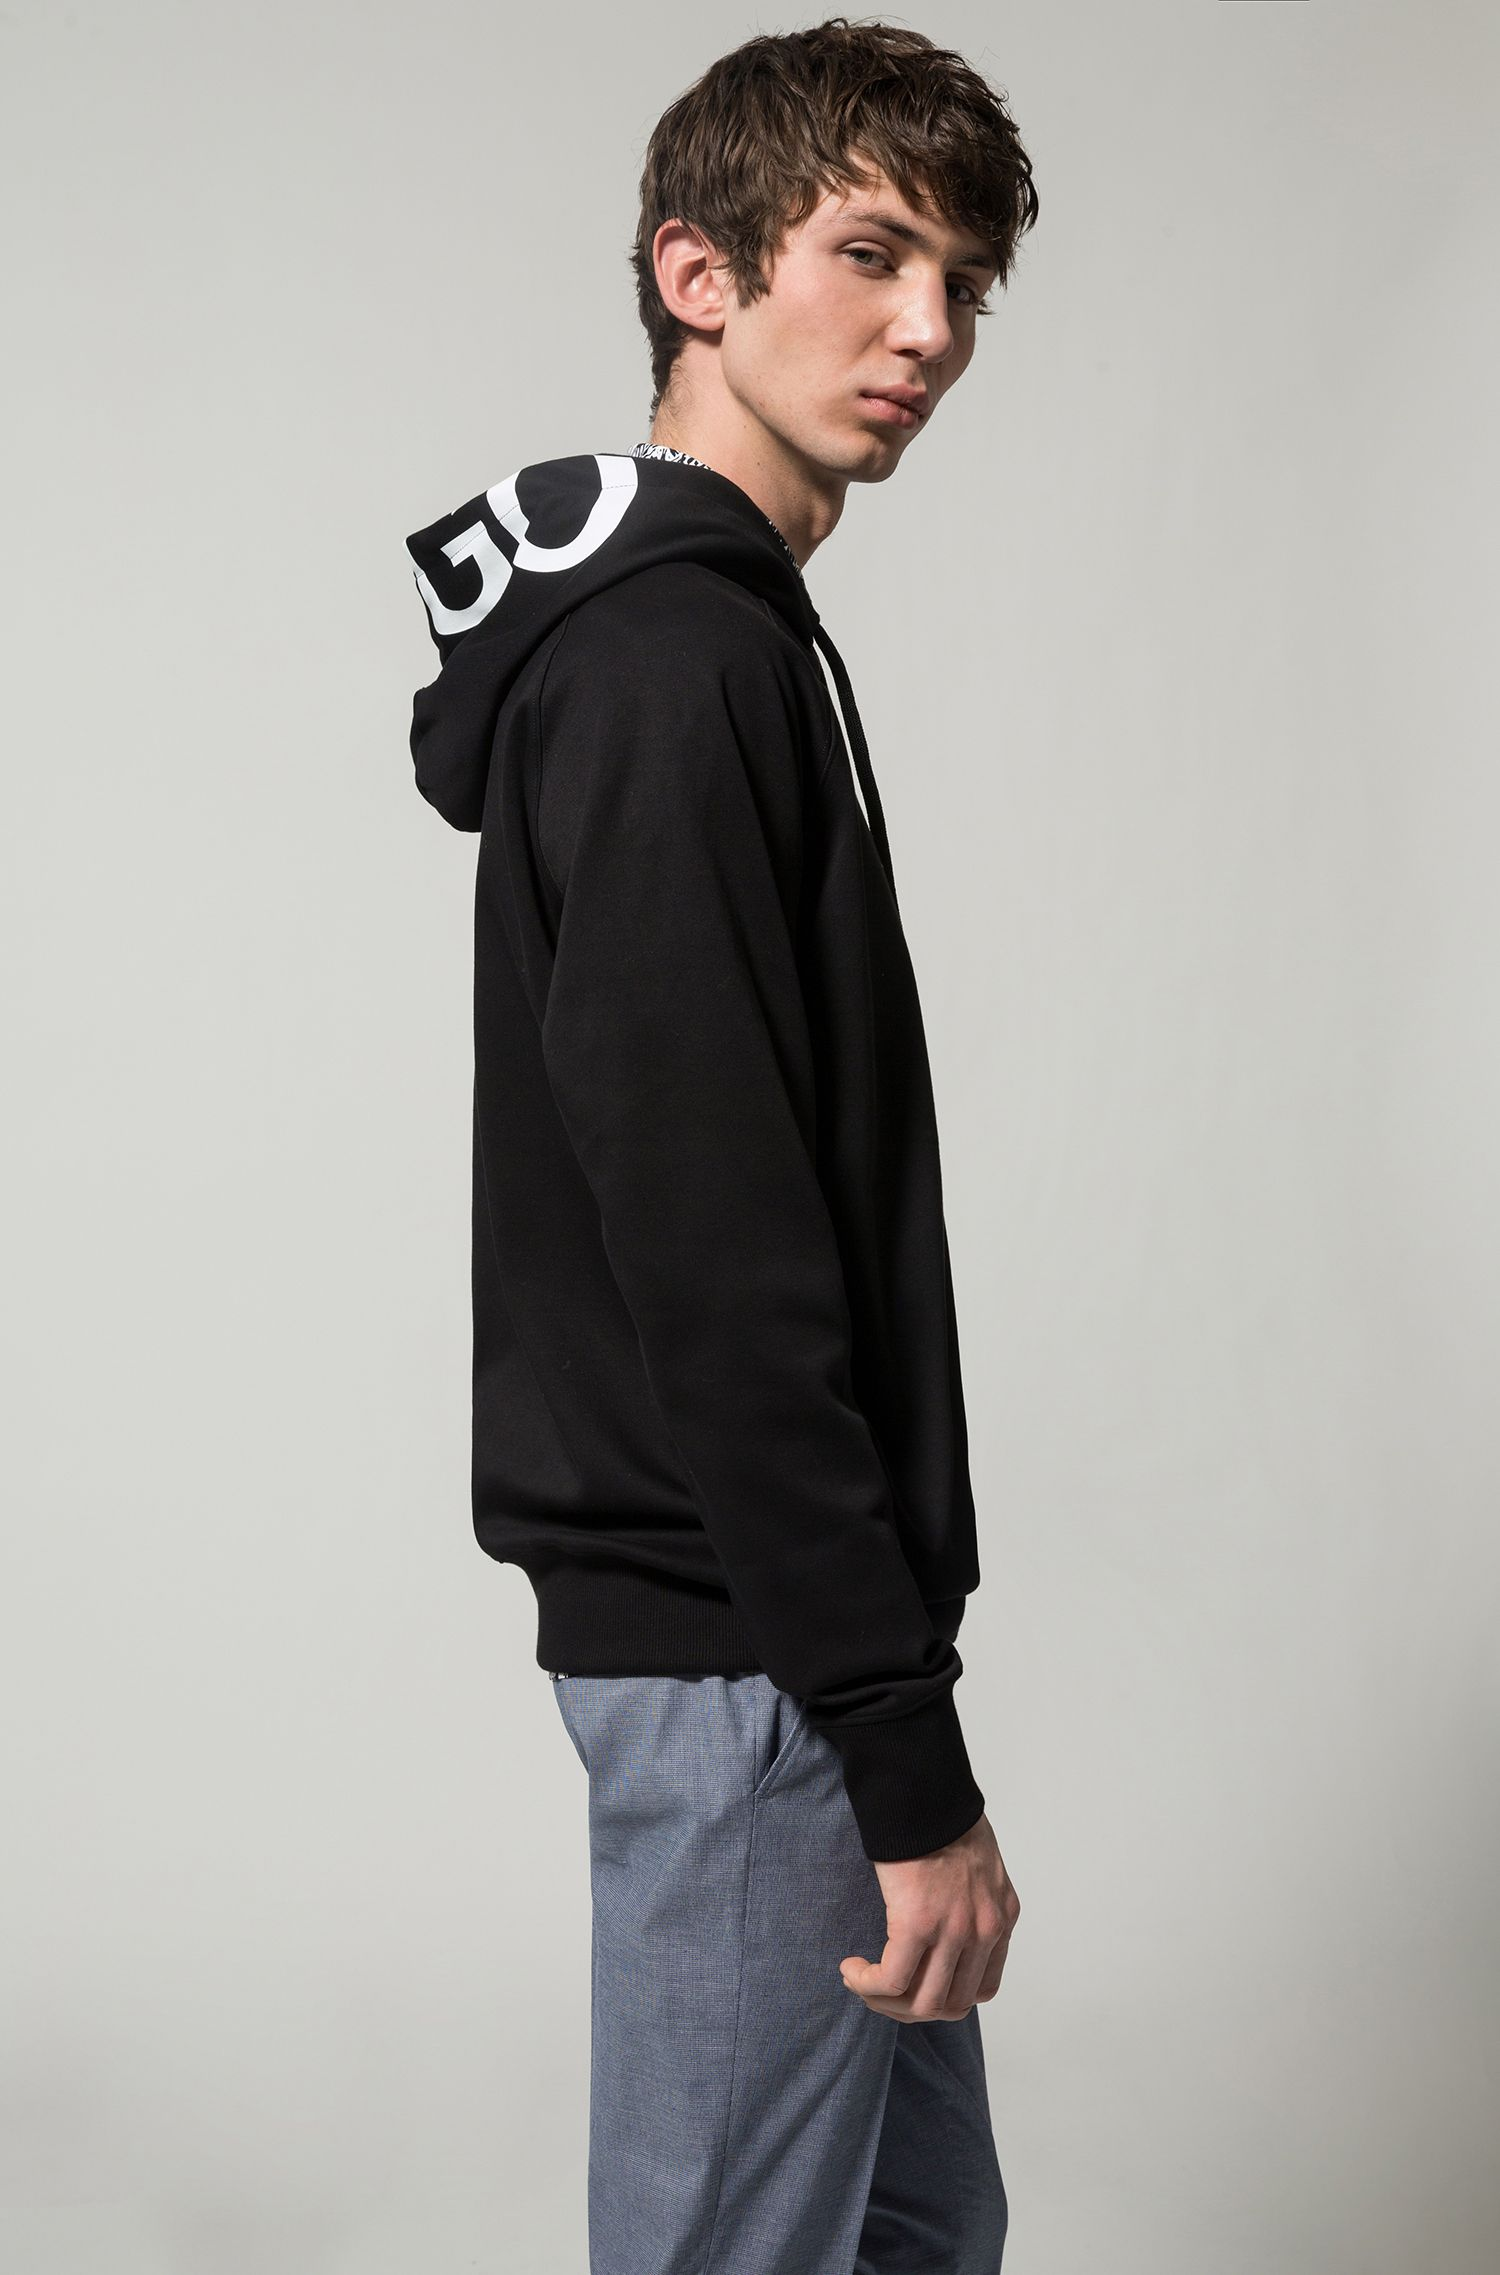 Logo-Print Cotton Sweatshirt | Dayfun, Black